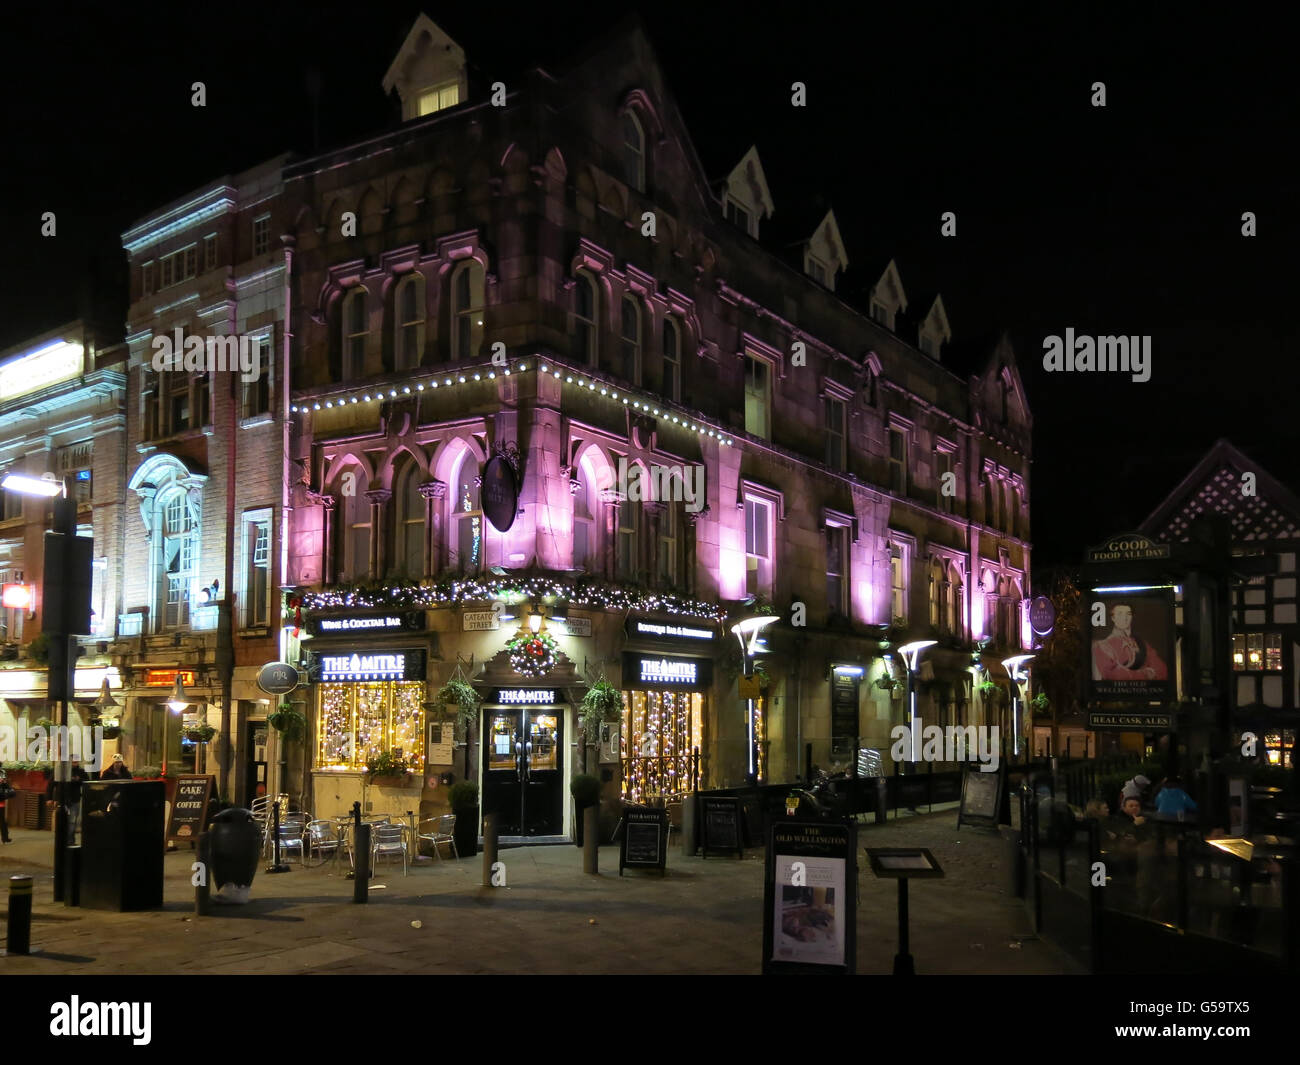 The Mitre Bar at Shambles Square by night in the city centre of Manchester, England, UK Stock Photo